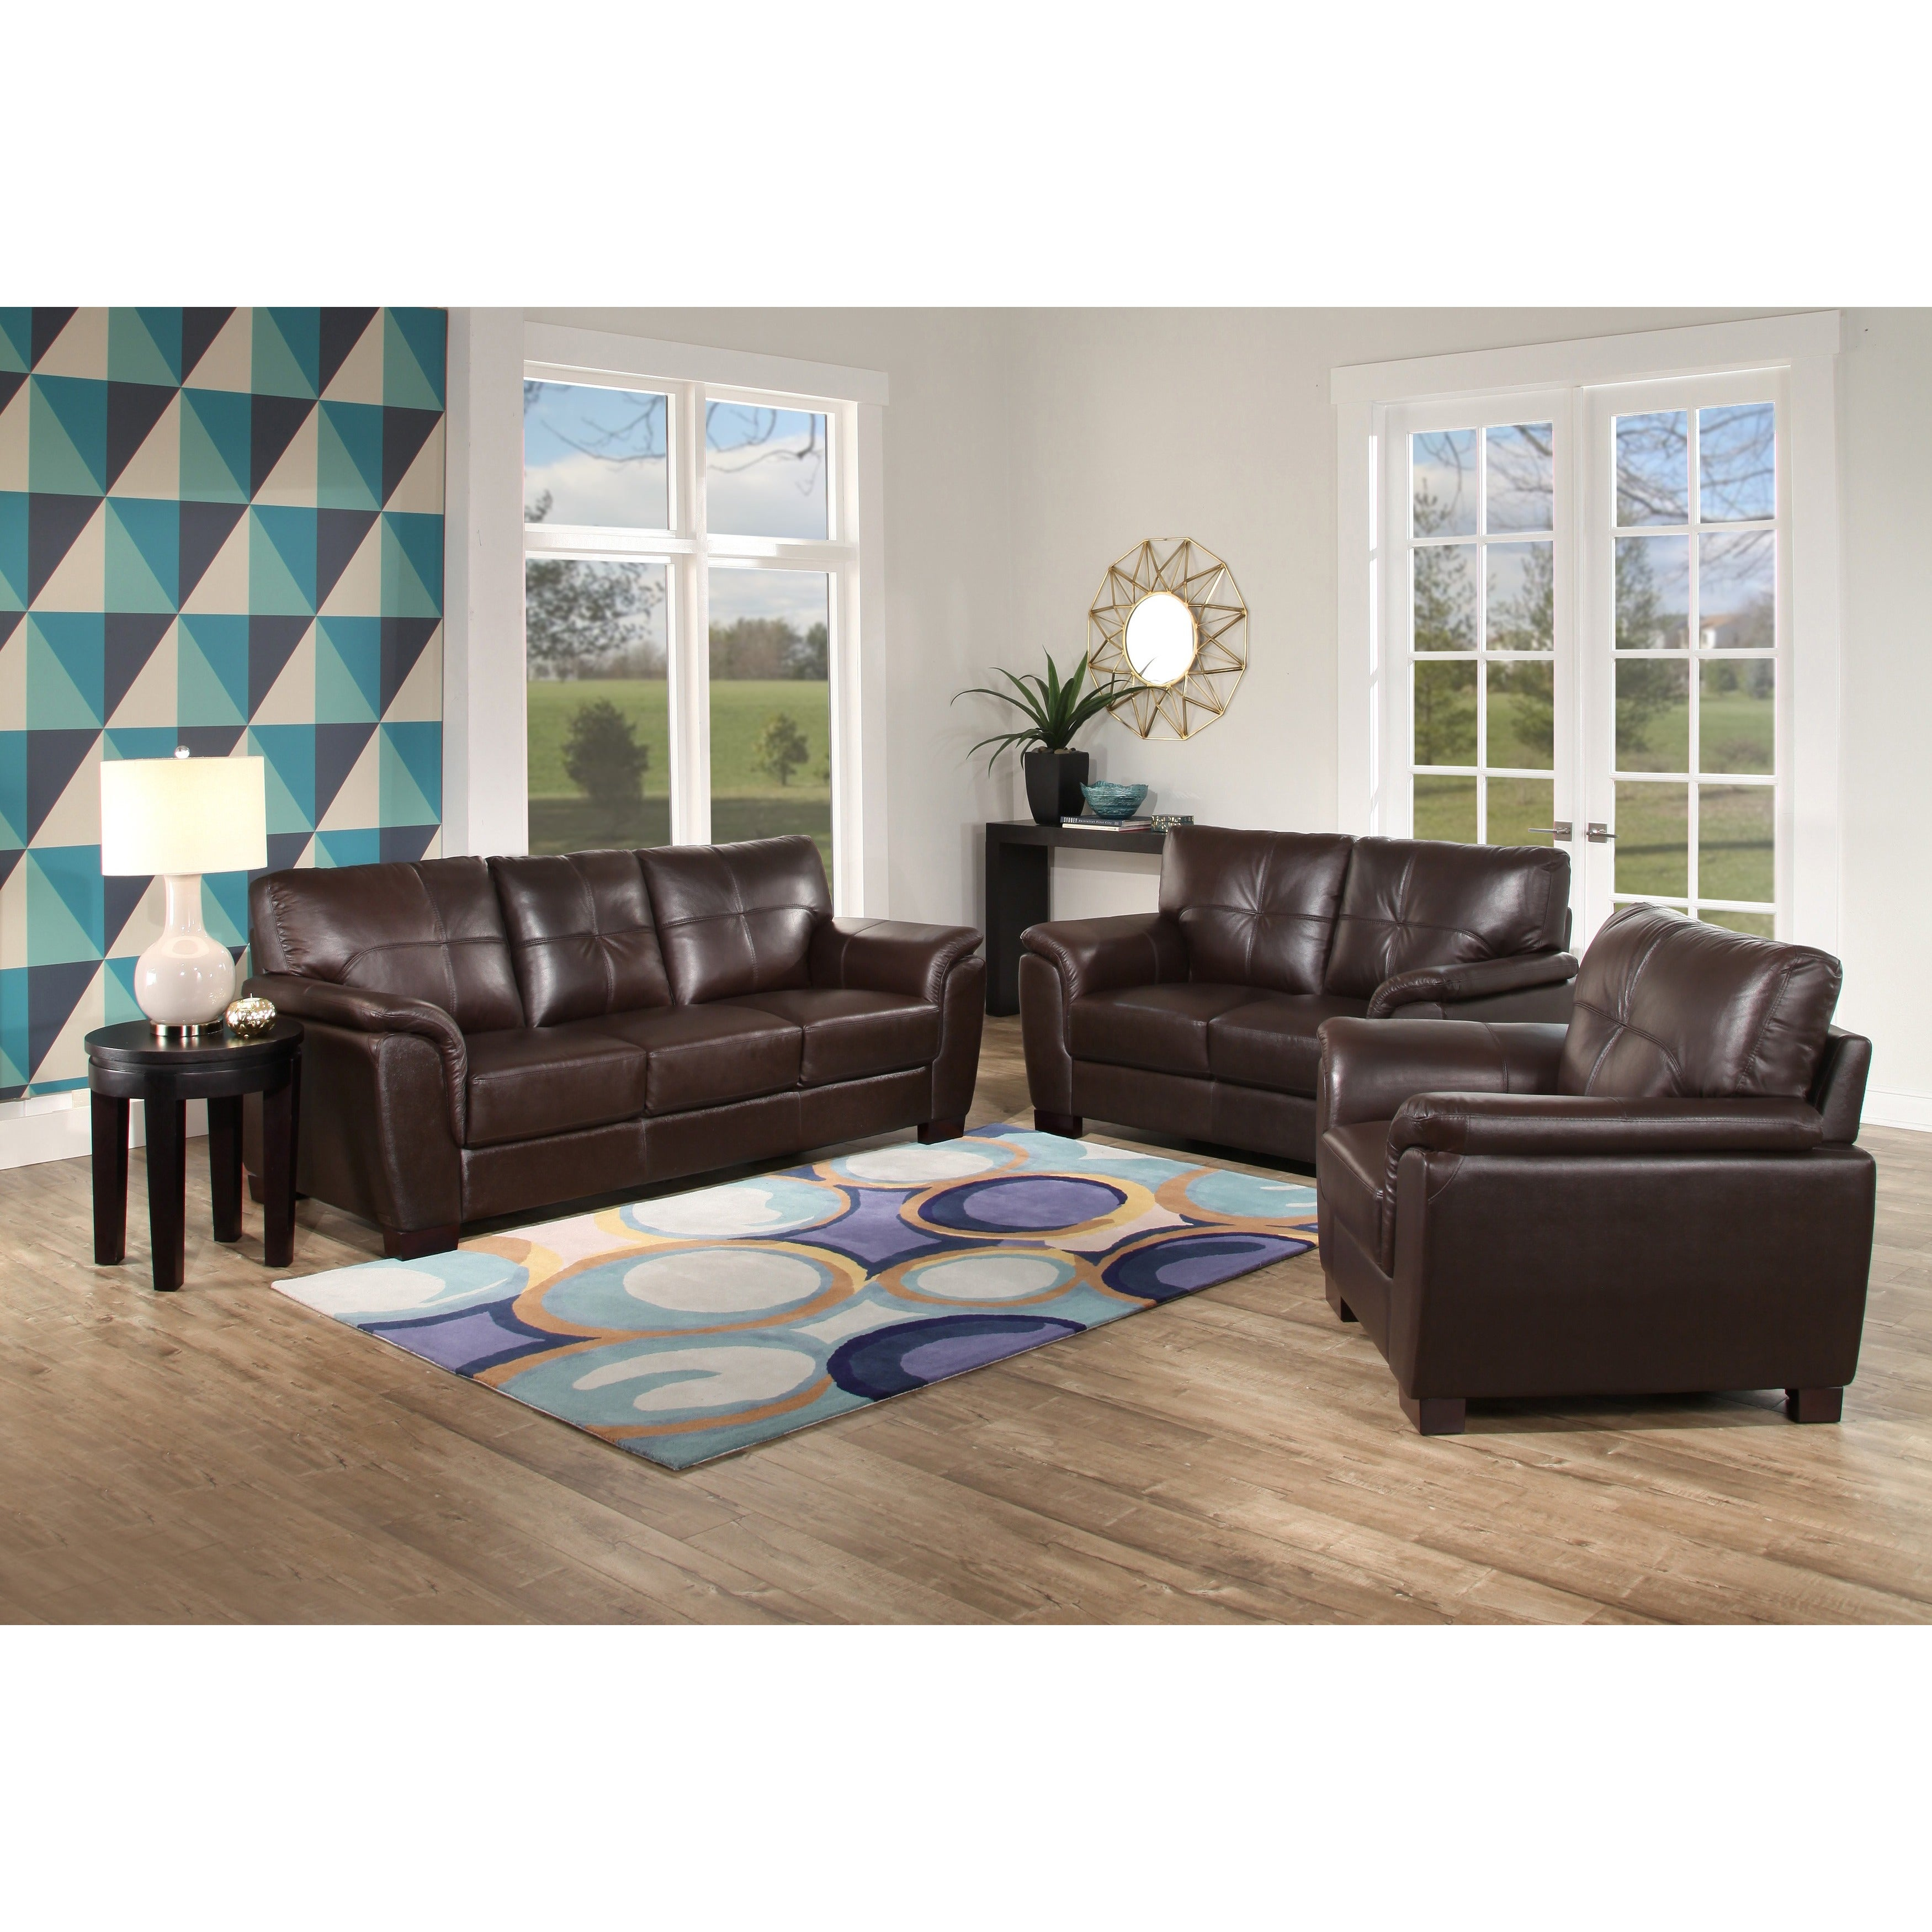 Attrayant ... Living Room Furniture Sets. Abbyson U0026#x27;Belizeu0026#x27; Brown Leather 3  Piece ...